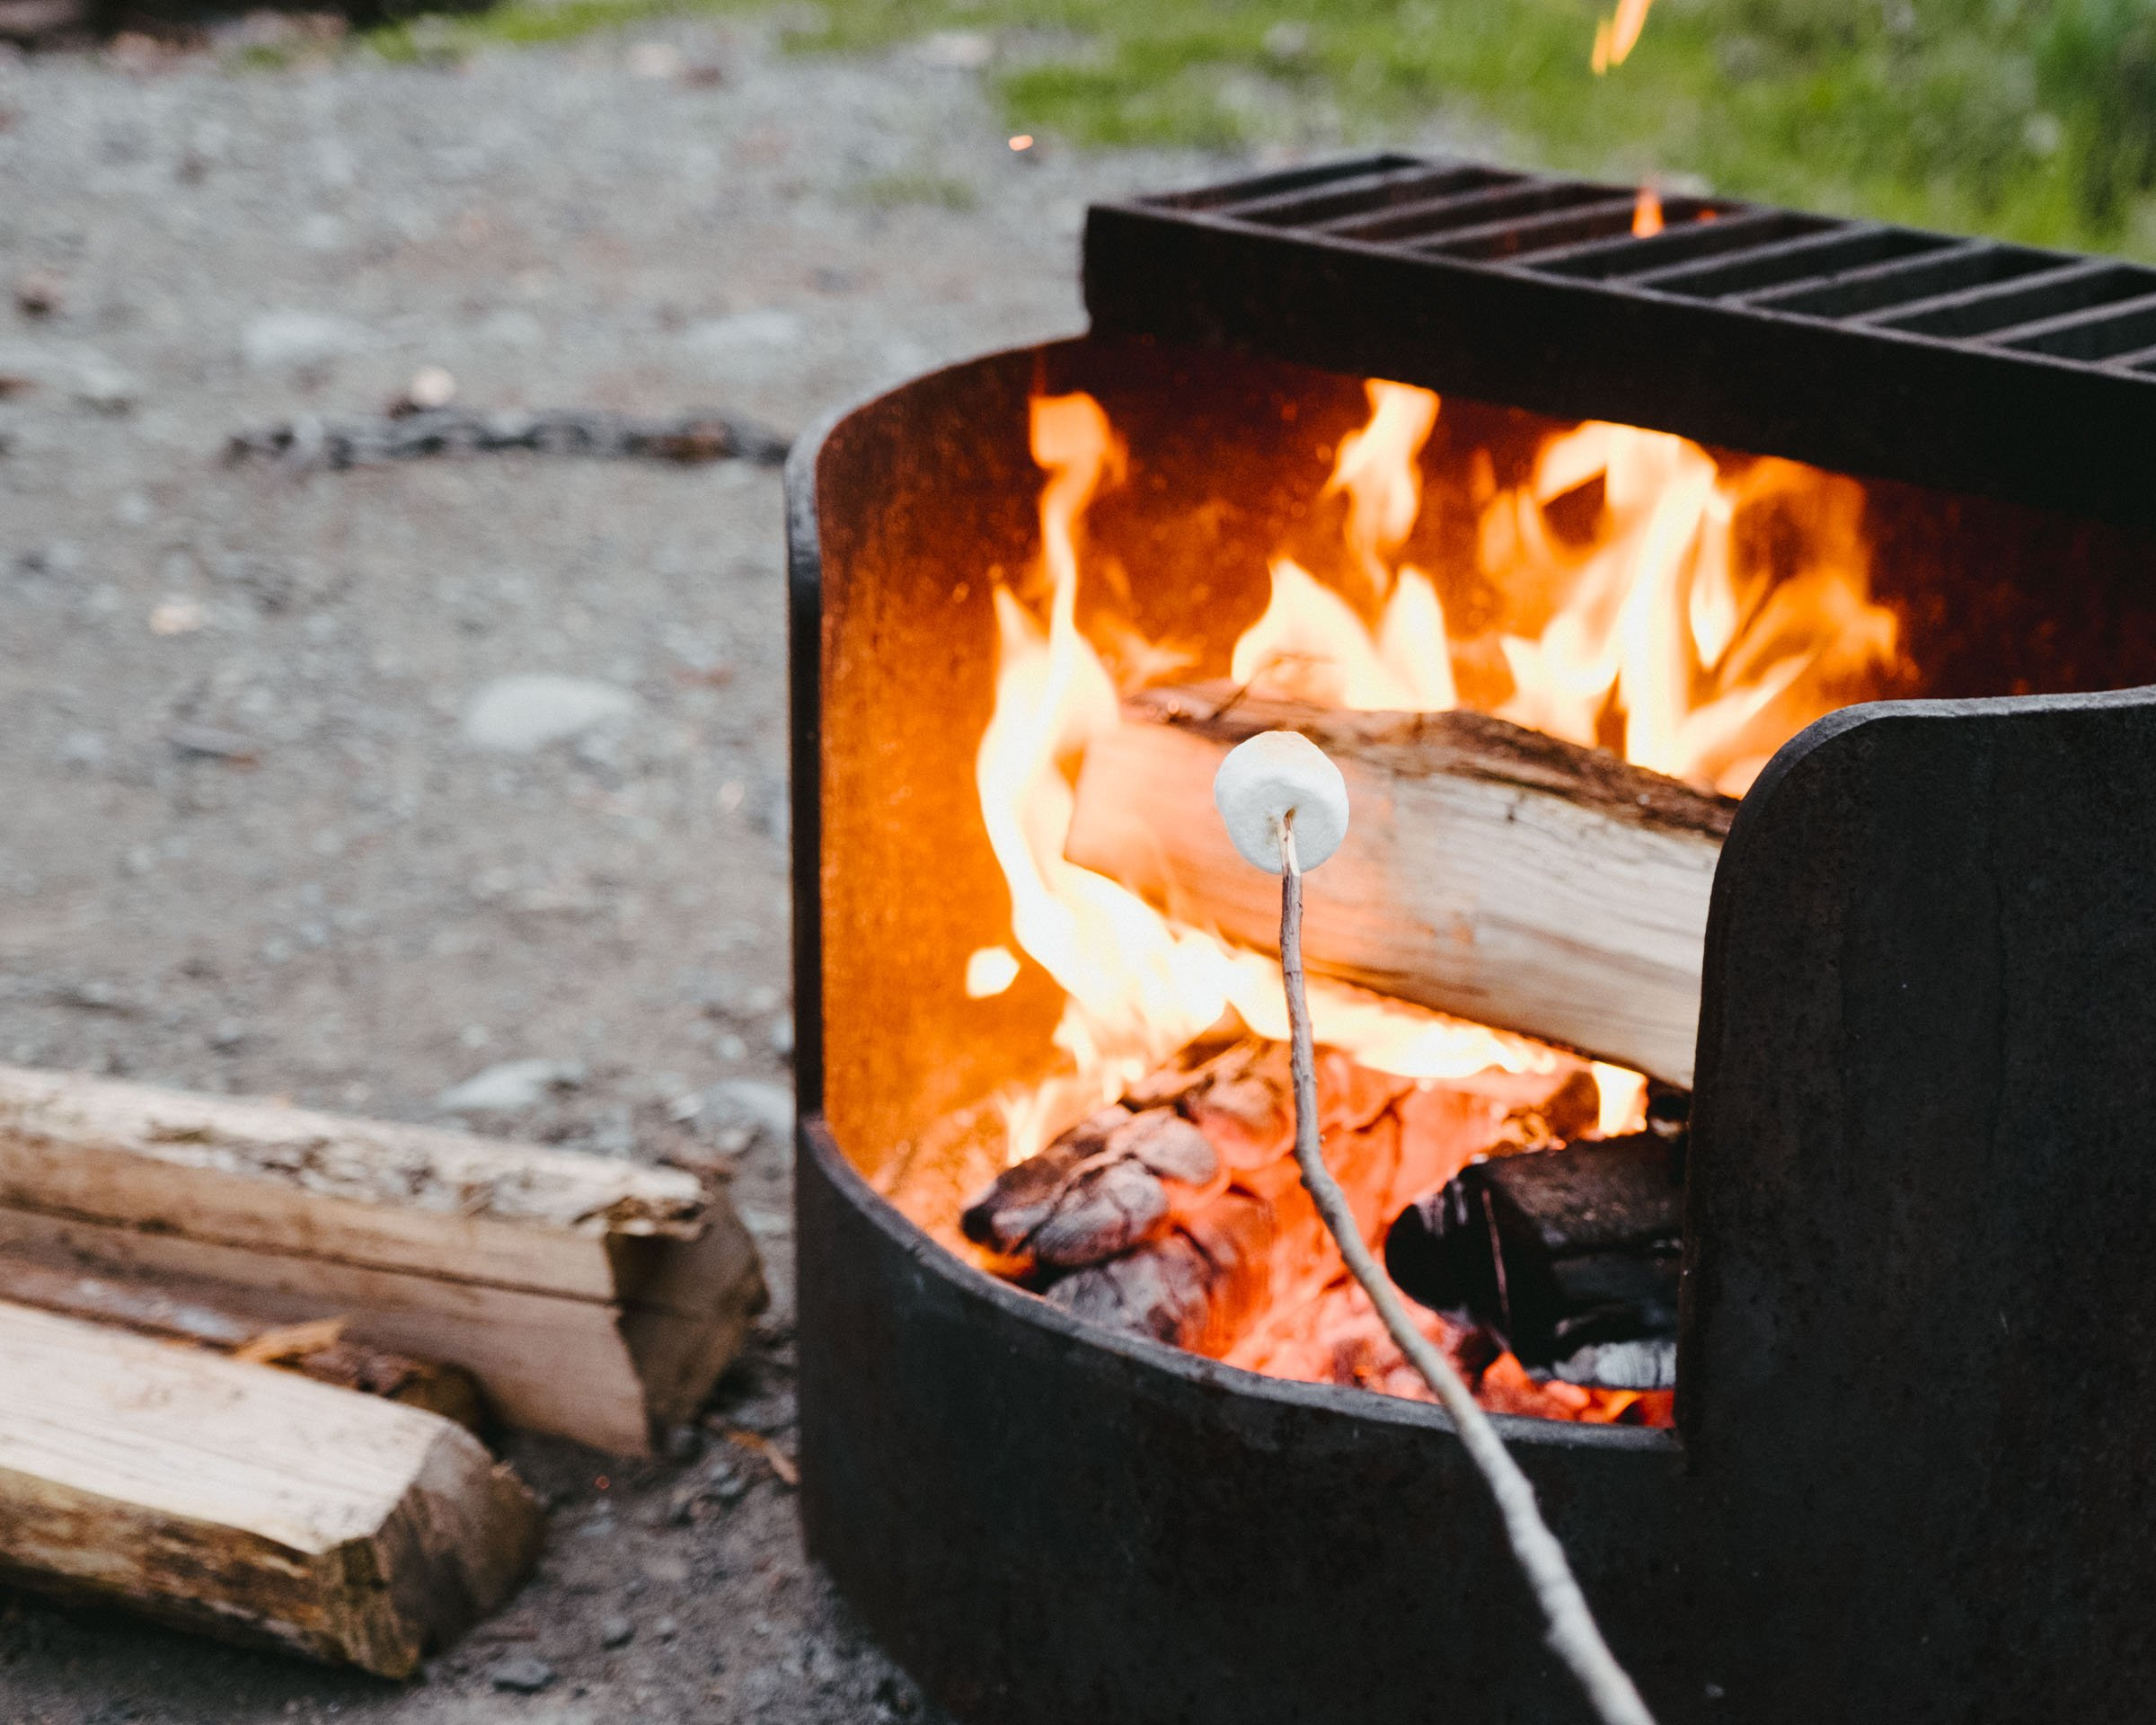 Roasting marshmallows at Ross Lake in Skagit Valley Provincial Park